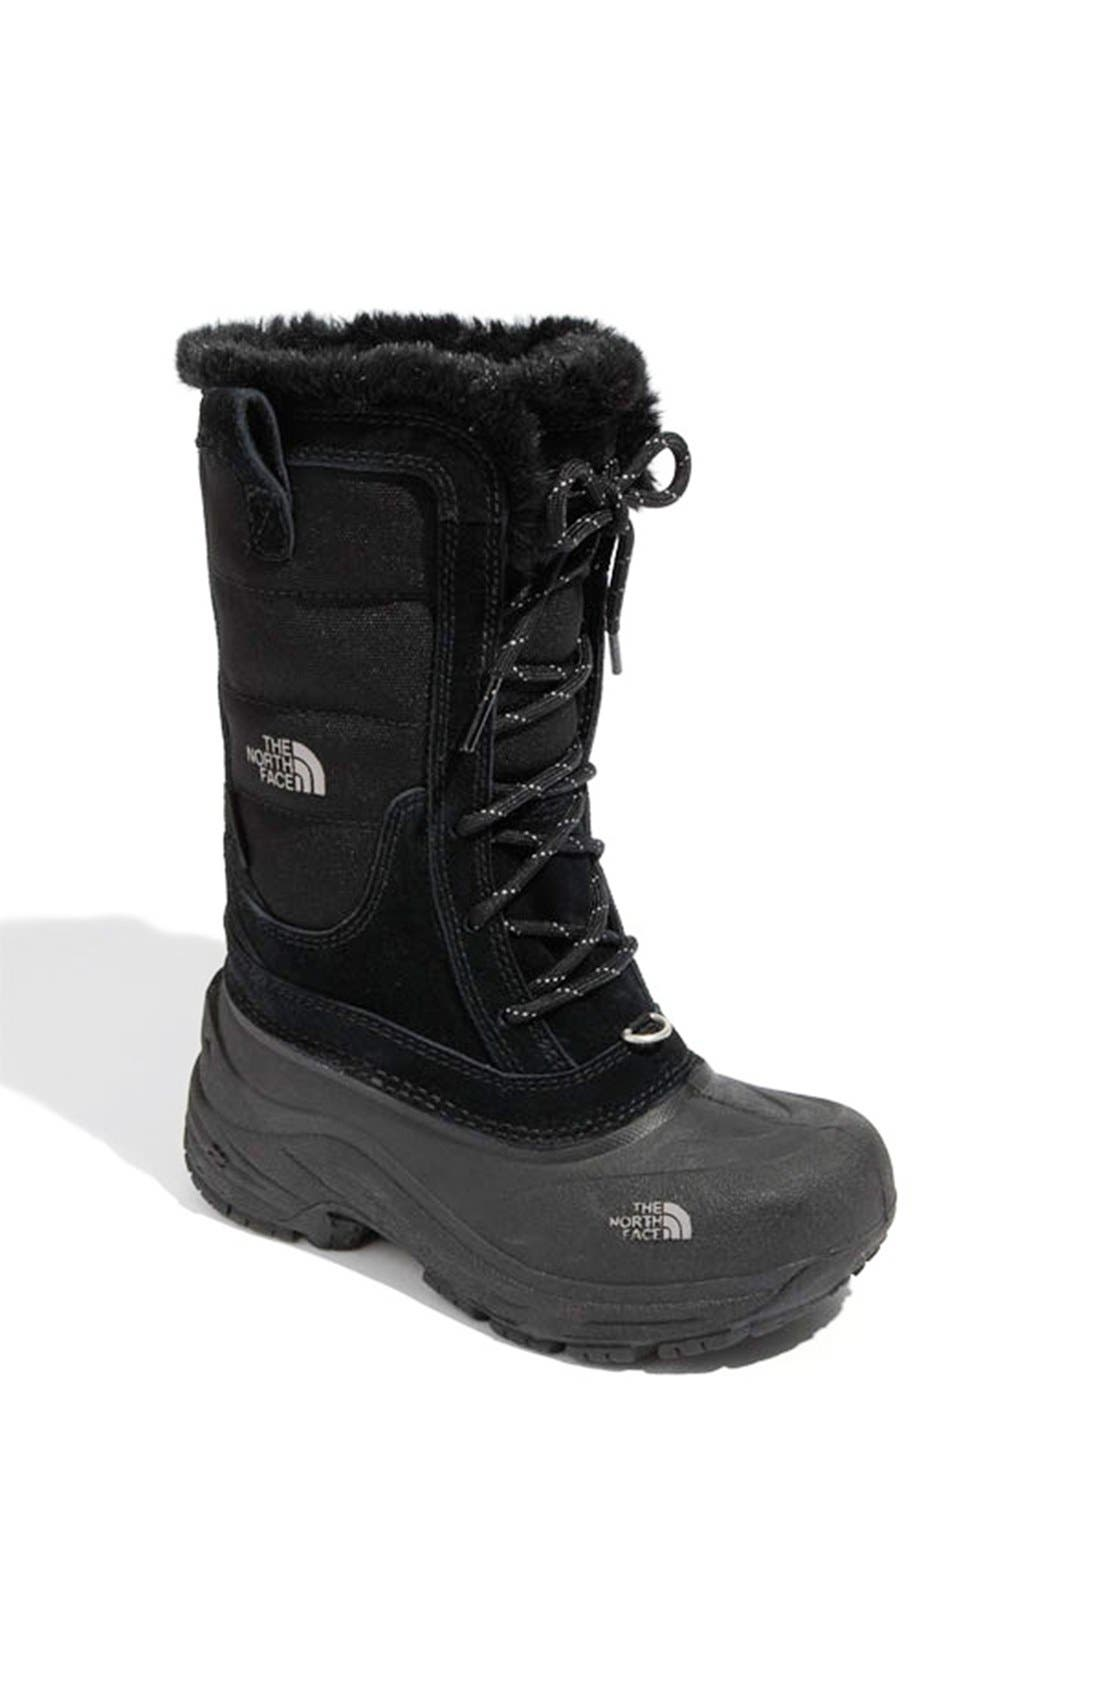 Alternate Image 1 Selected - The North Face 'Shellista' Boot (Toddler, Little Kid & Big Kid)